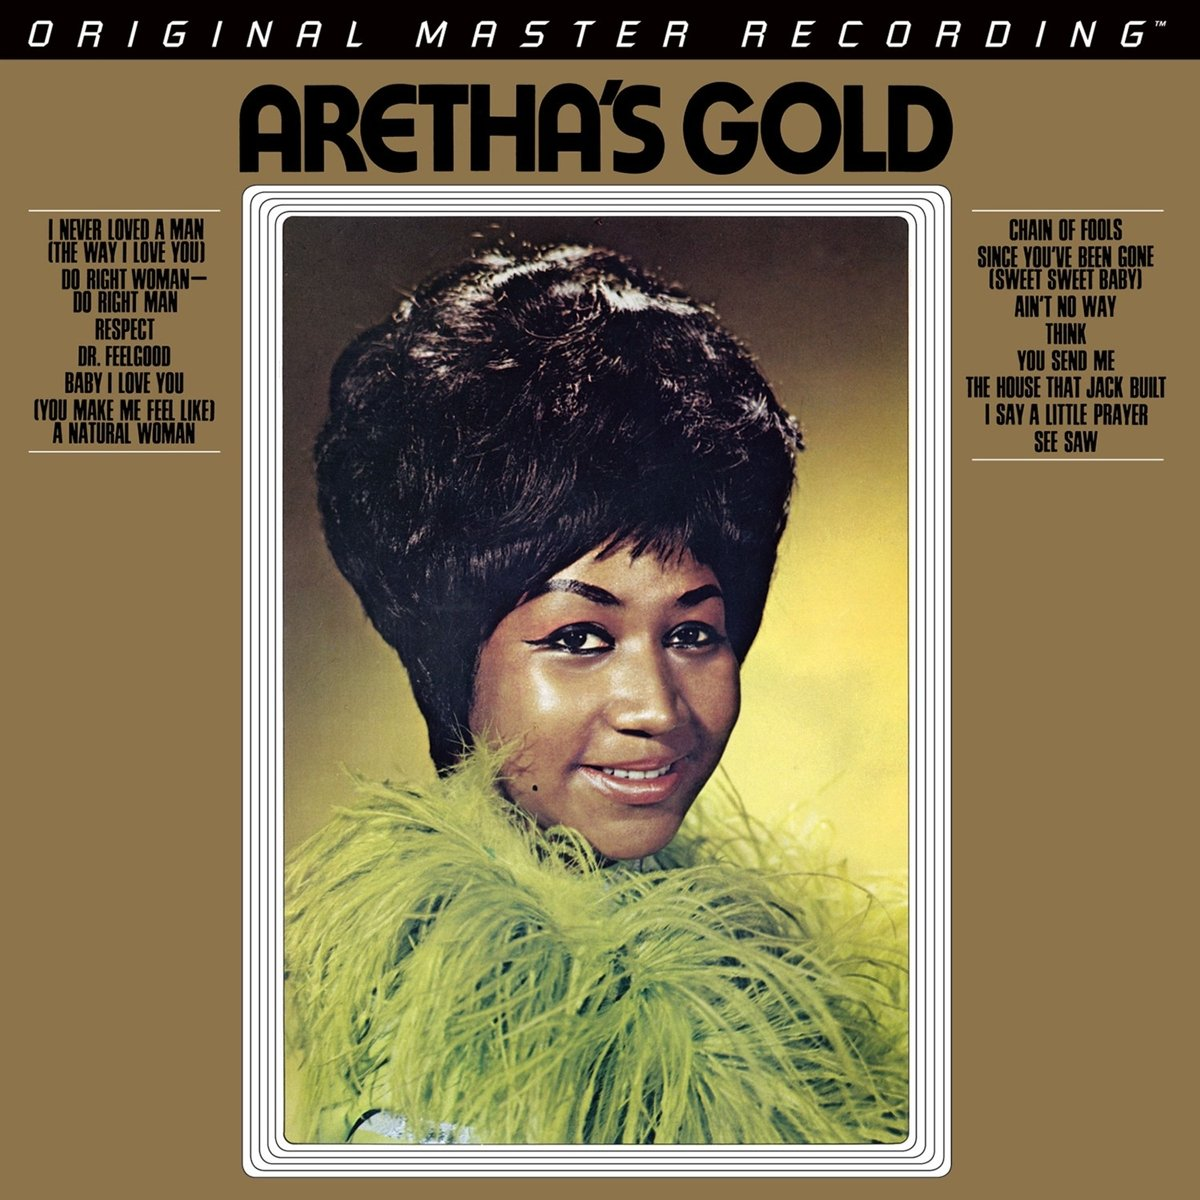 Aretha's Gold by Mobile Fidelity